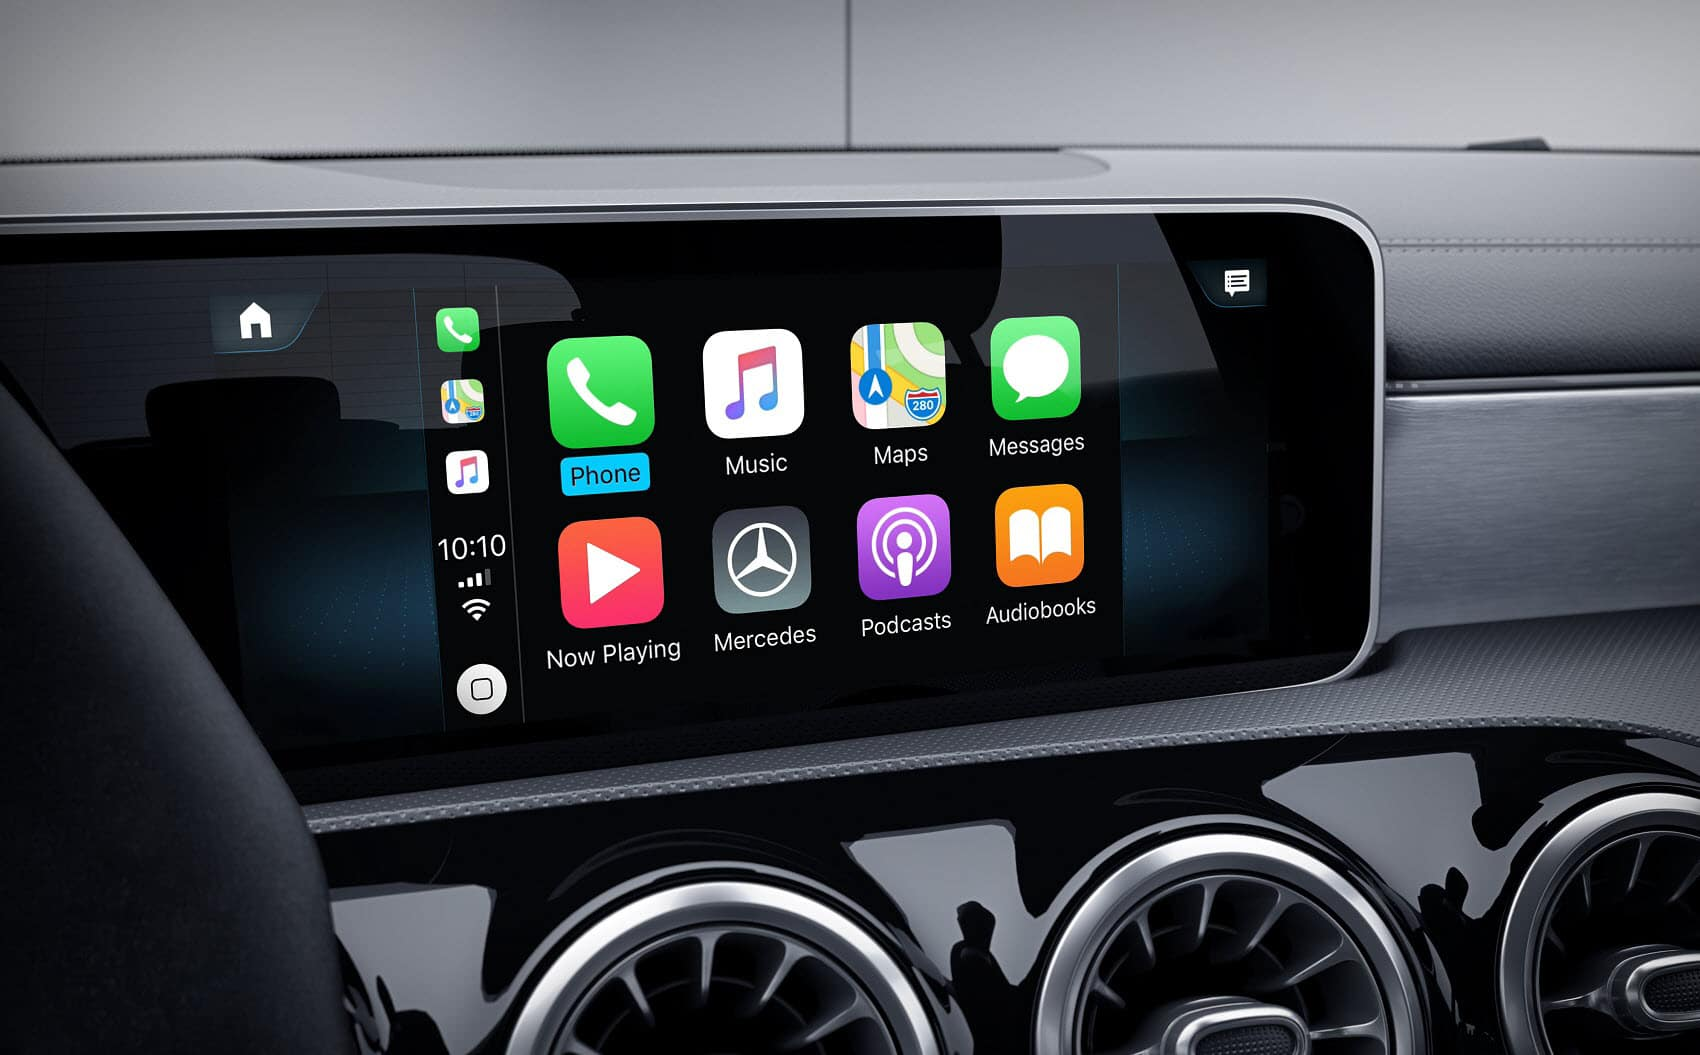 2021 Mercedes A-Class Interior with Apple CarPlay® Technology